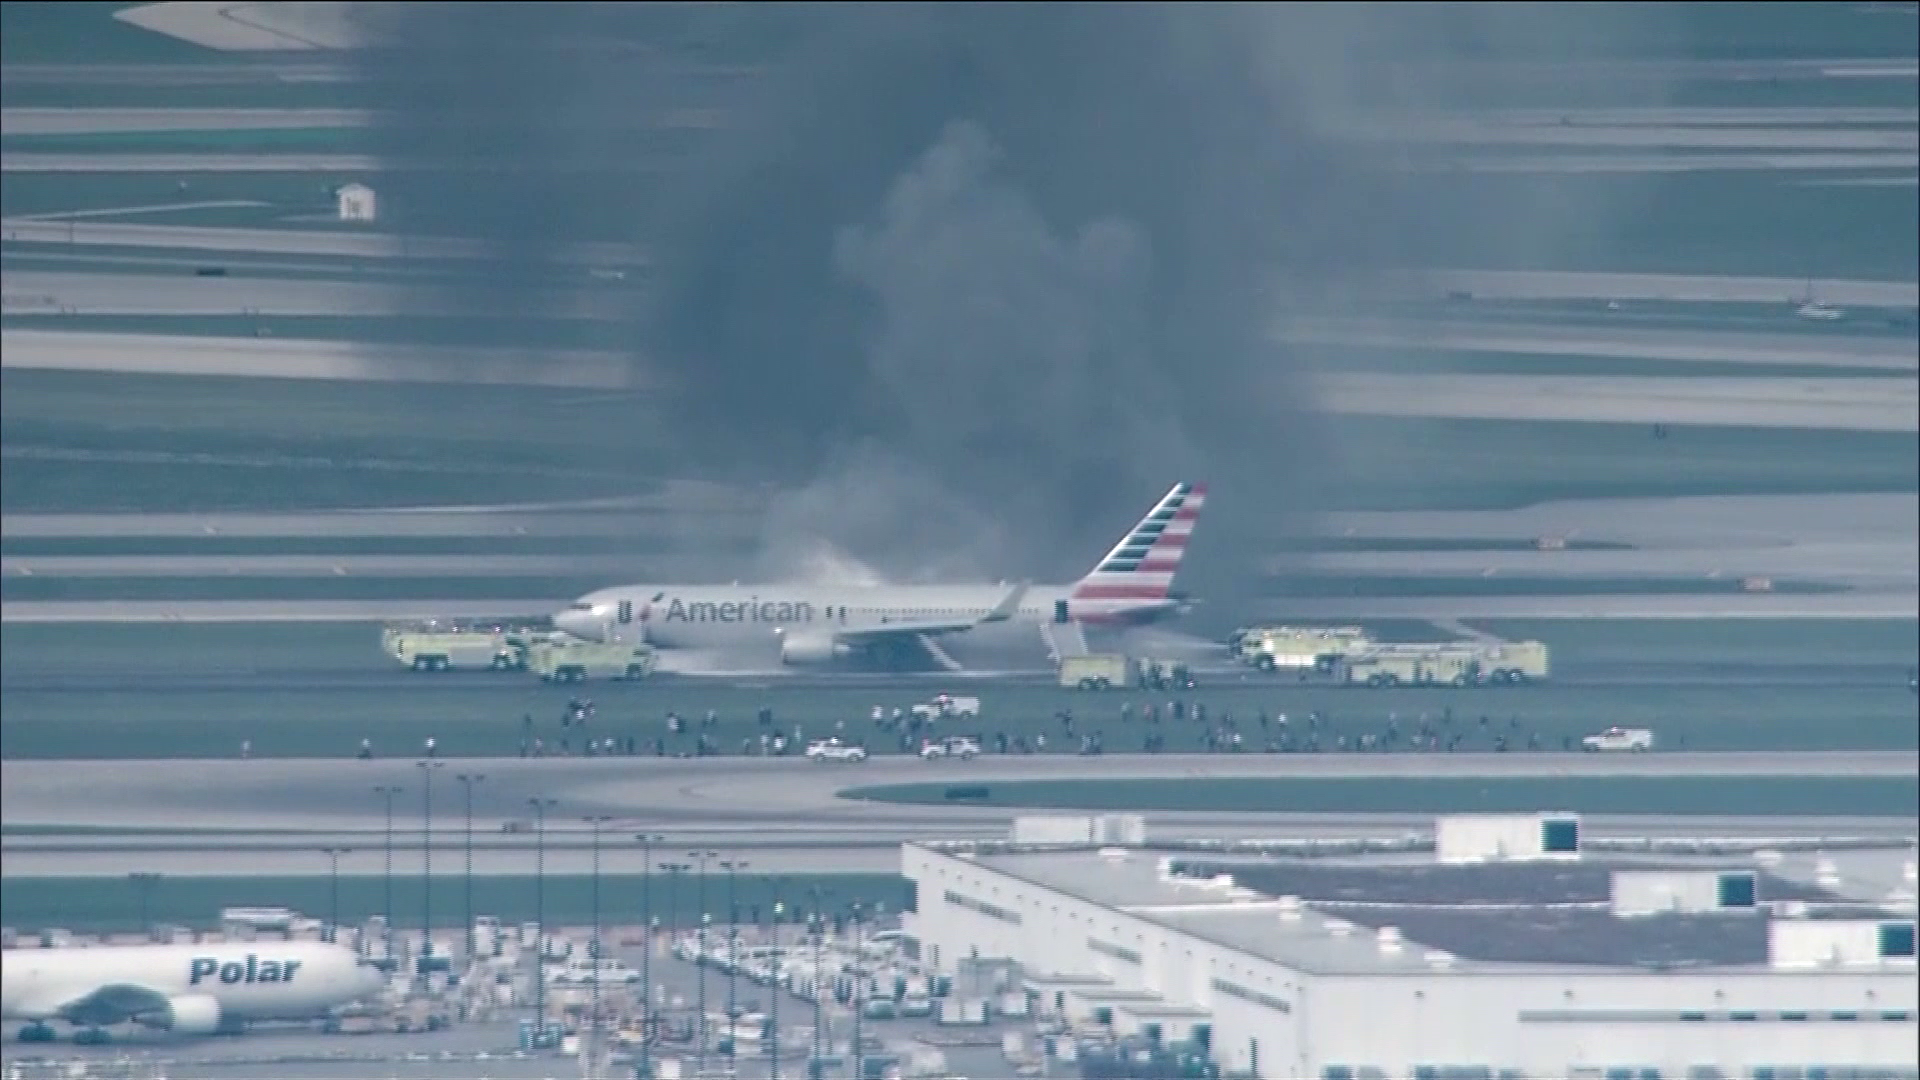 American Airlines plane fire Chicago_264544